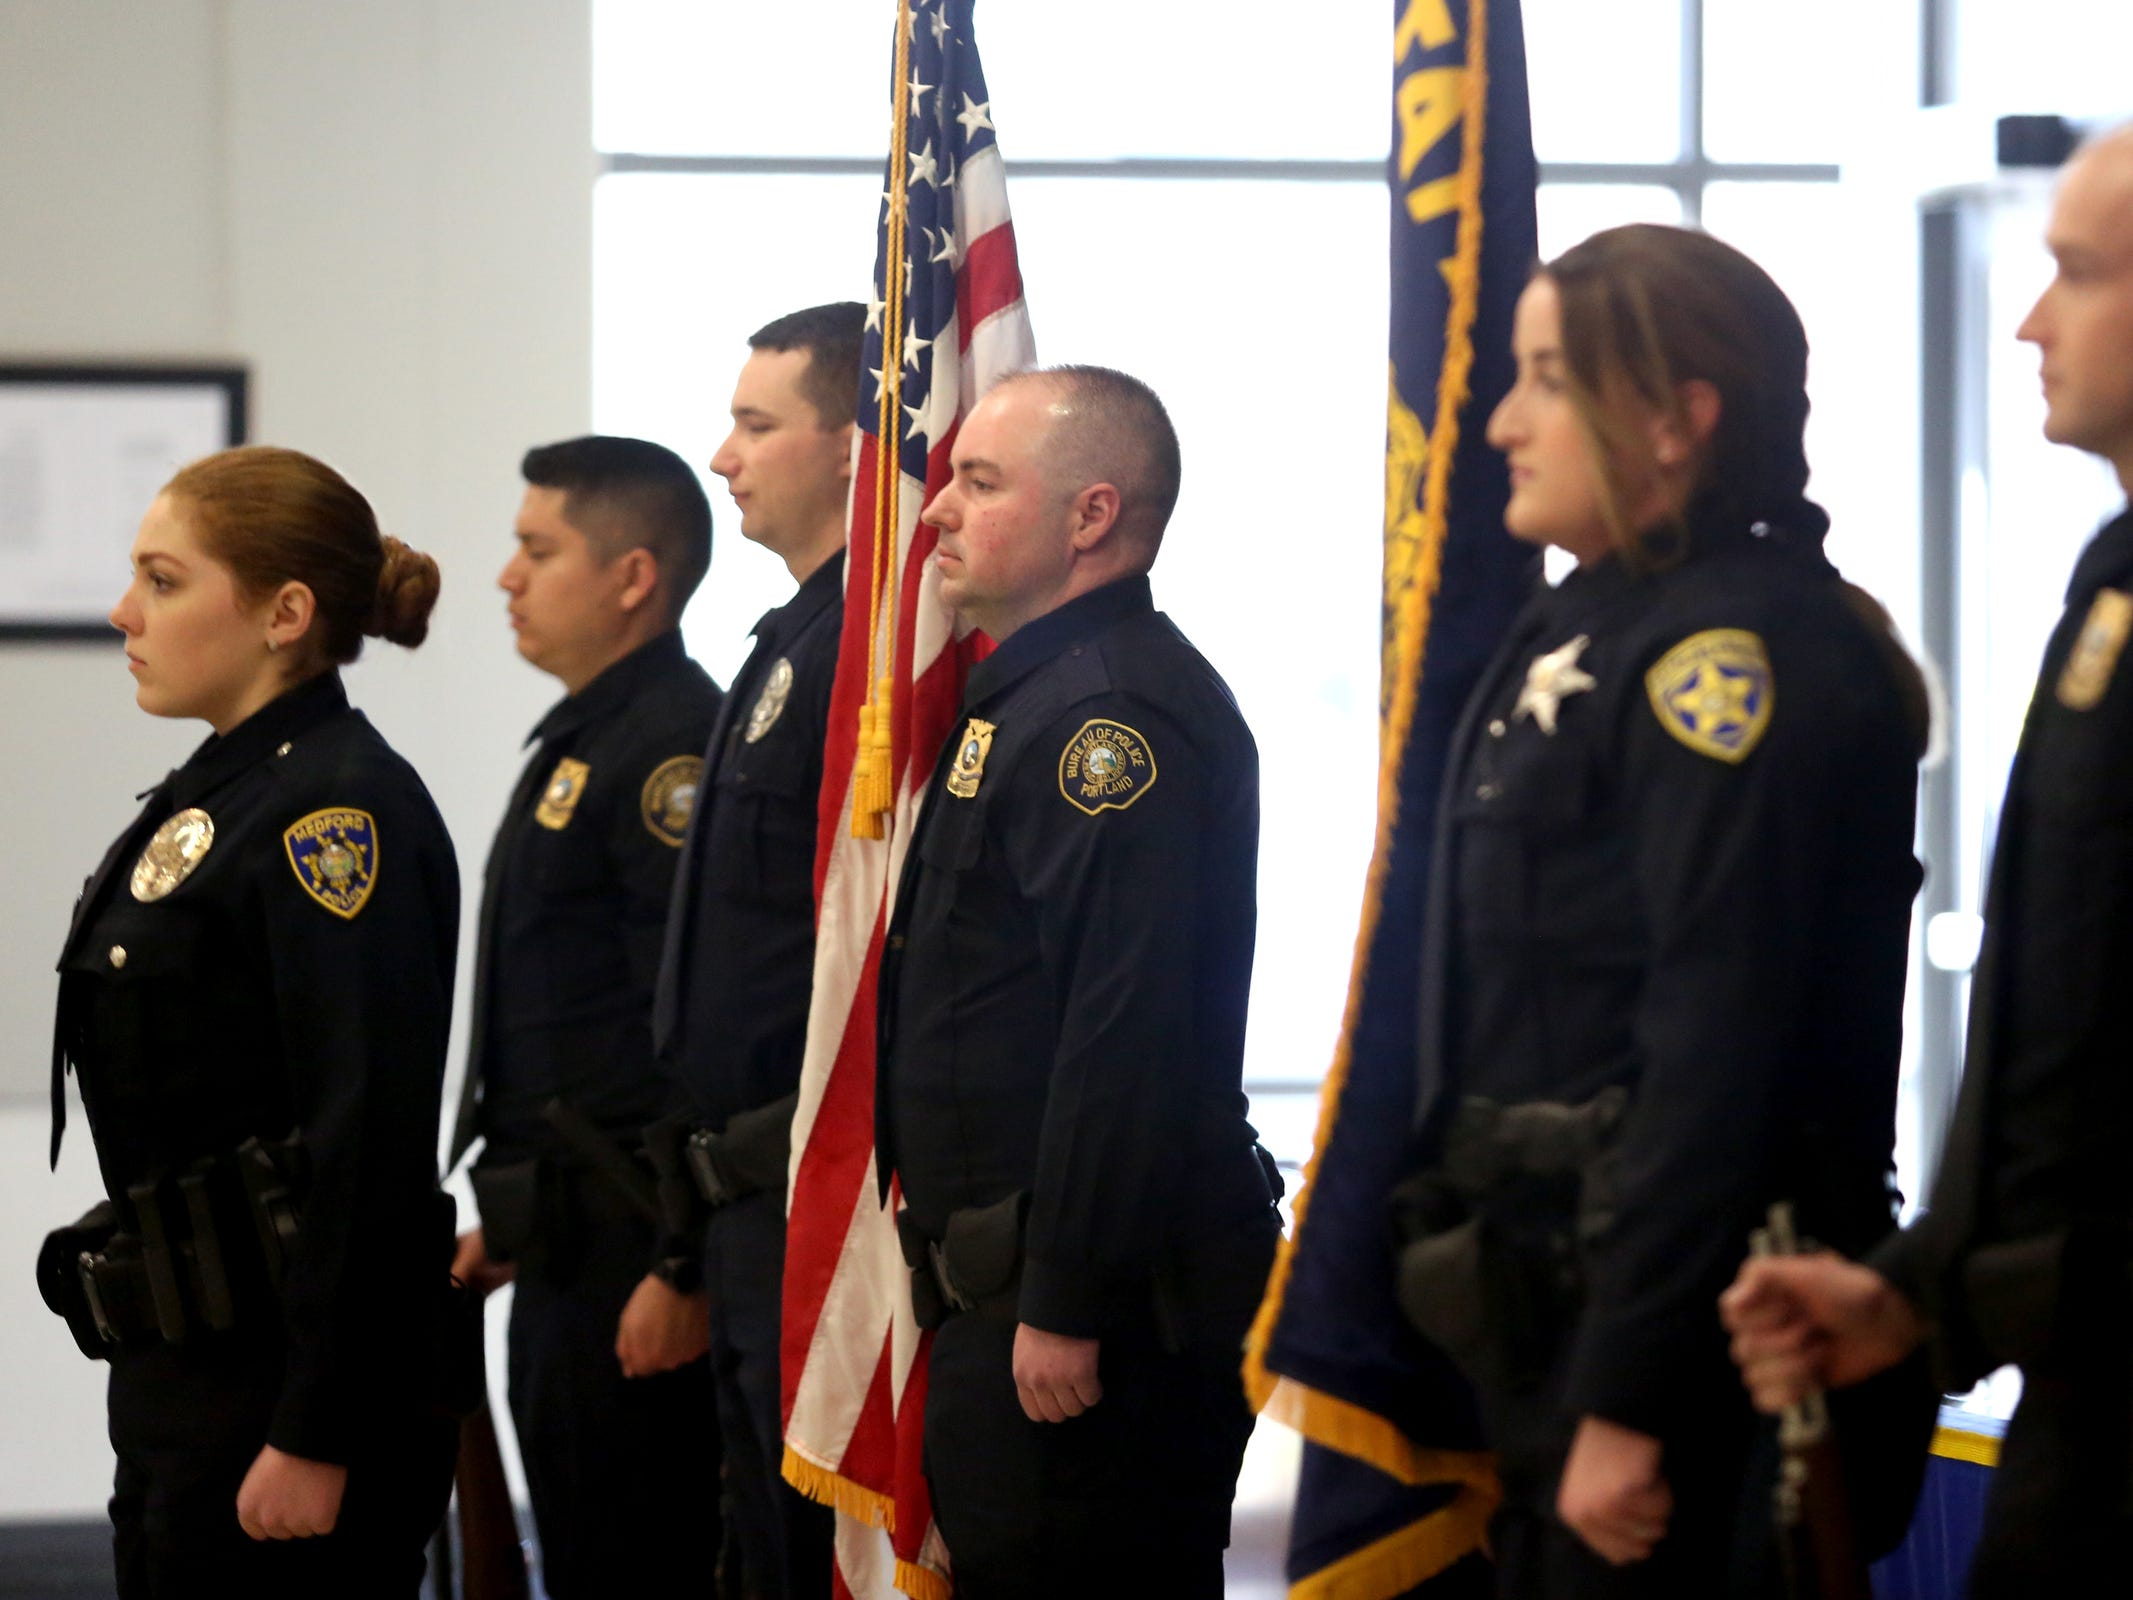 The colors are posted during a Basic Police Class graduation ceremony at the Department of Public Safety Standards and Training in Salem on March 15, 2019.